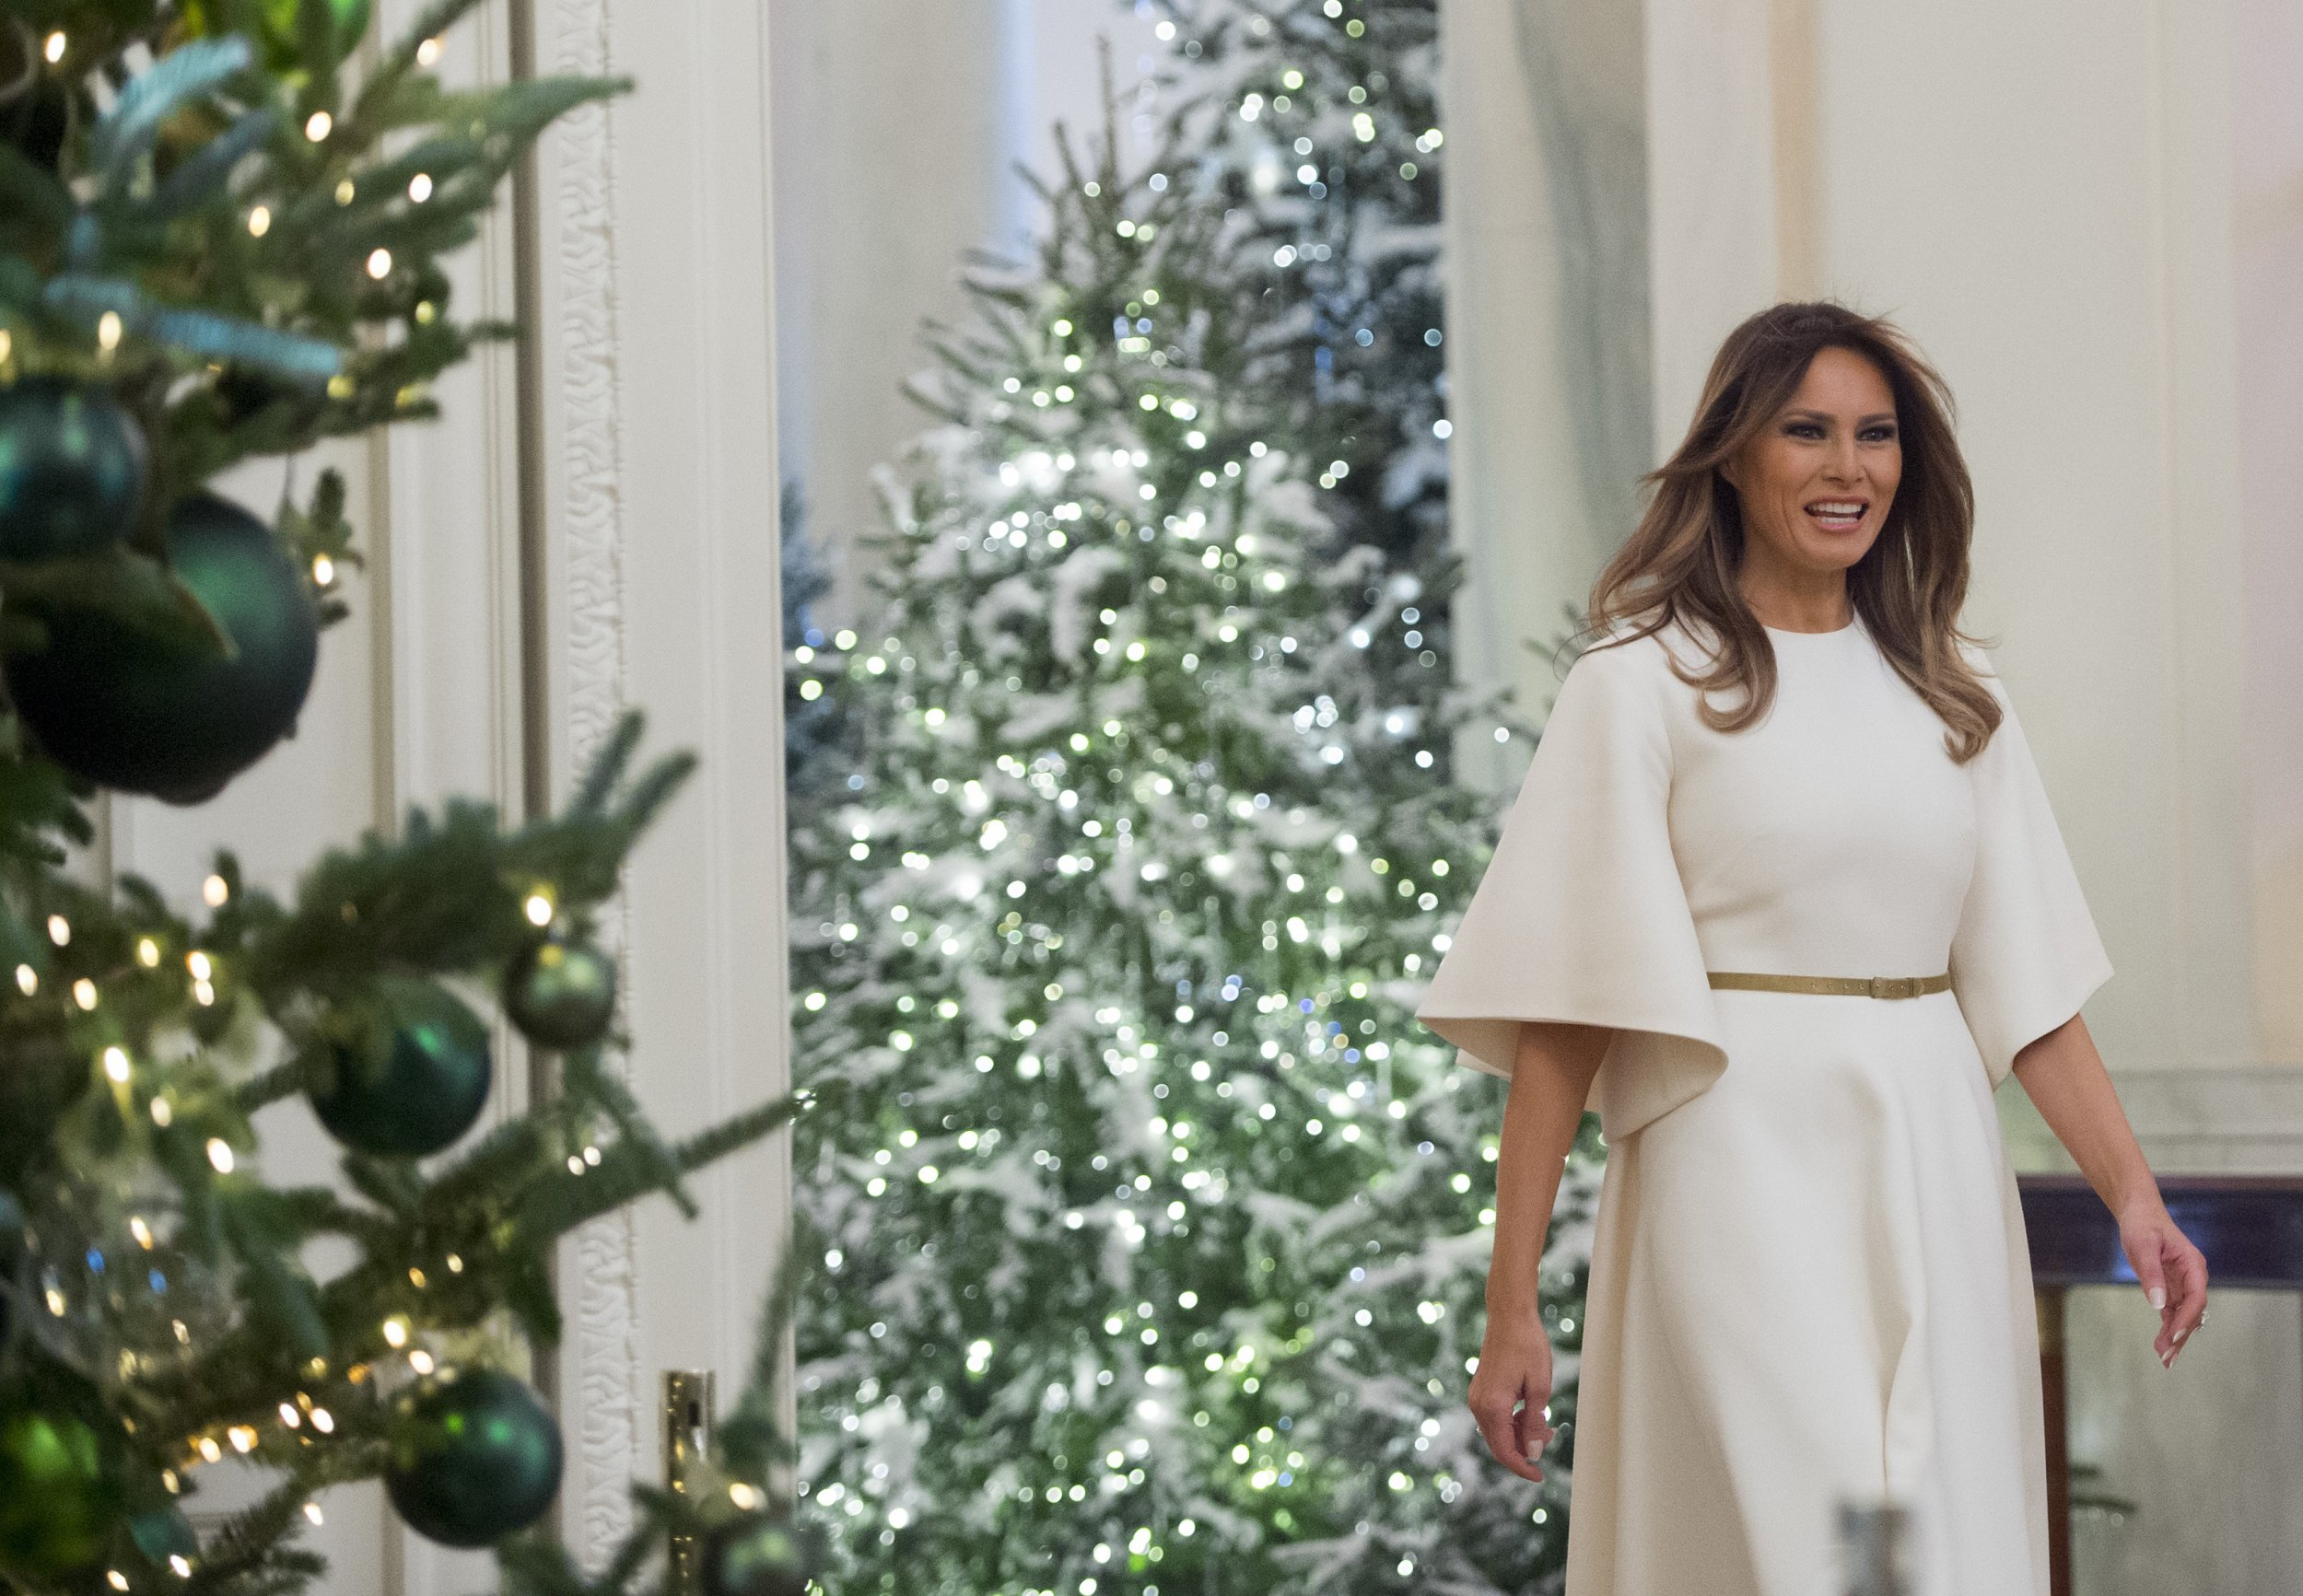 Melania Trumps Christmas Decorations at the White House Include a Note From the Obama Family